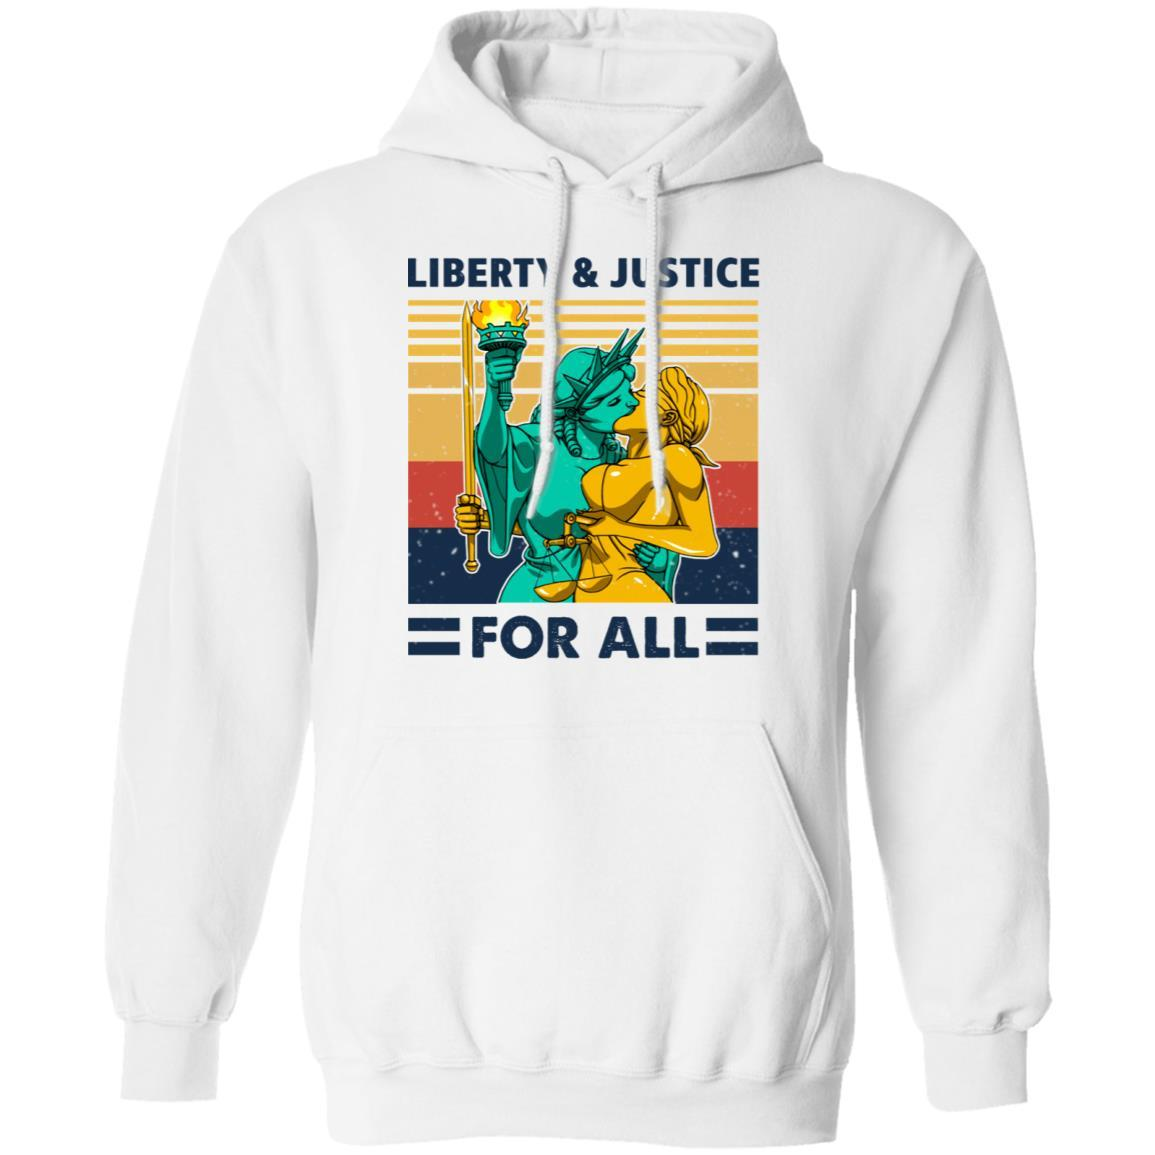 Liberty & Justice For All Vintage T-Shirts, Hoodies 541-4744-88477980-23183 - Tee Ript